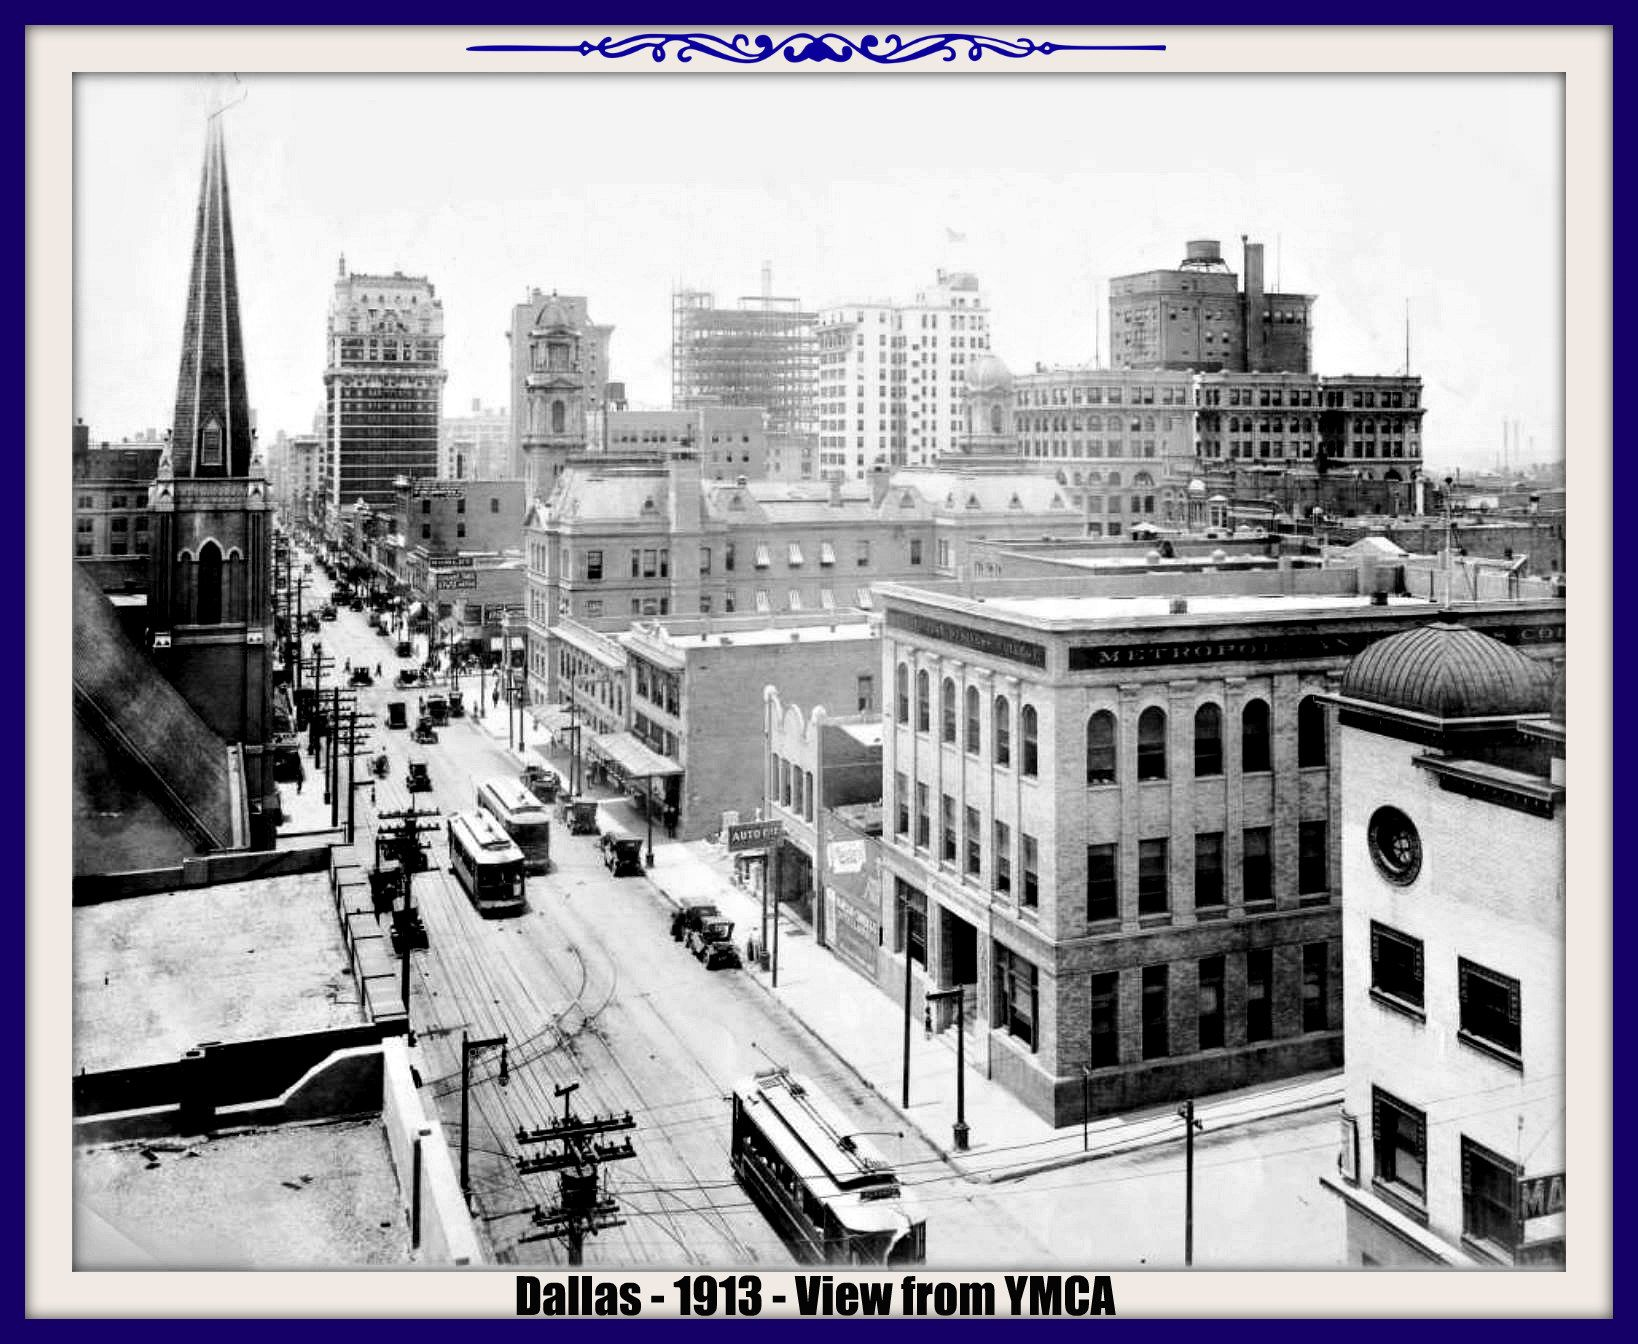 Dallas Texas In 1913 This Is The View From The Dallas Ymca Dallas Street View Views